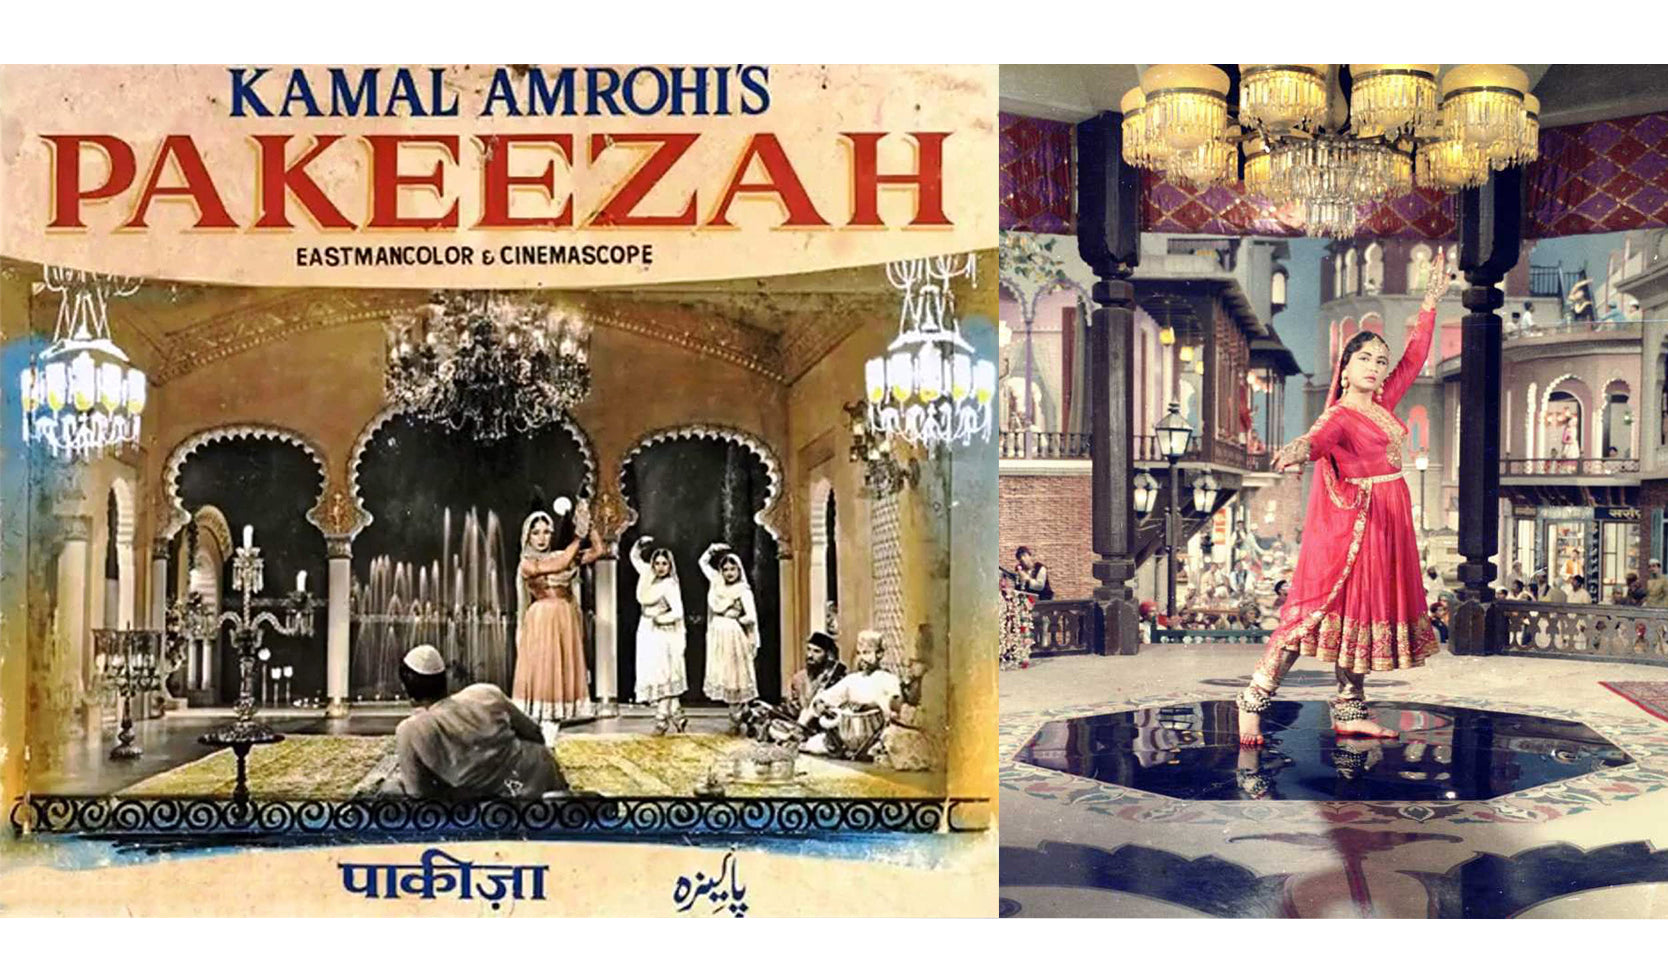 Pakeezah Movie Set Lightning